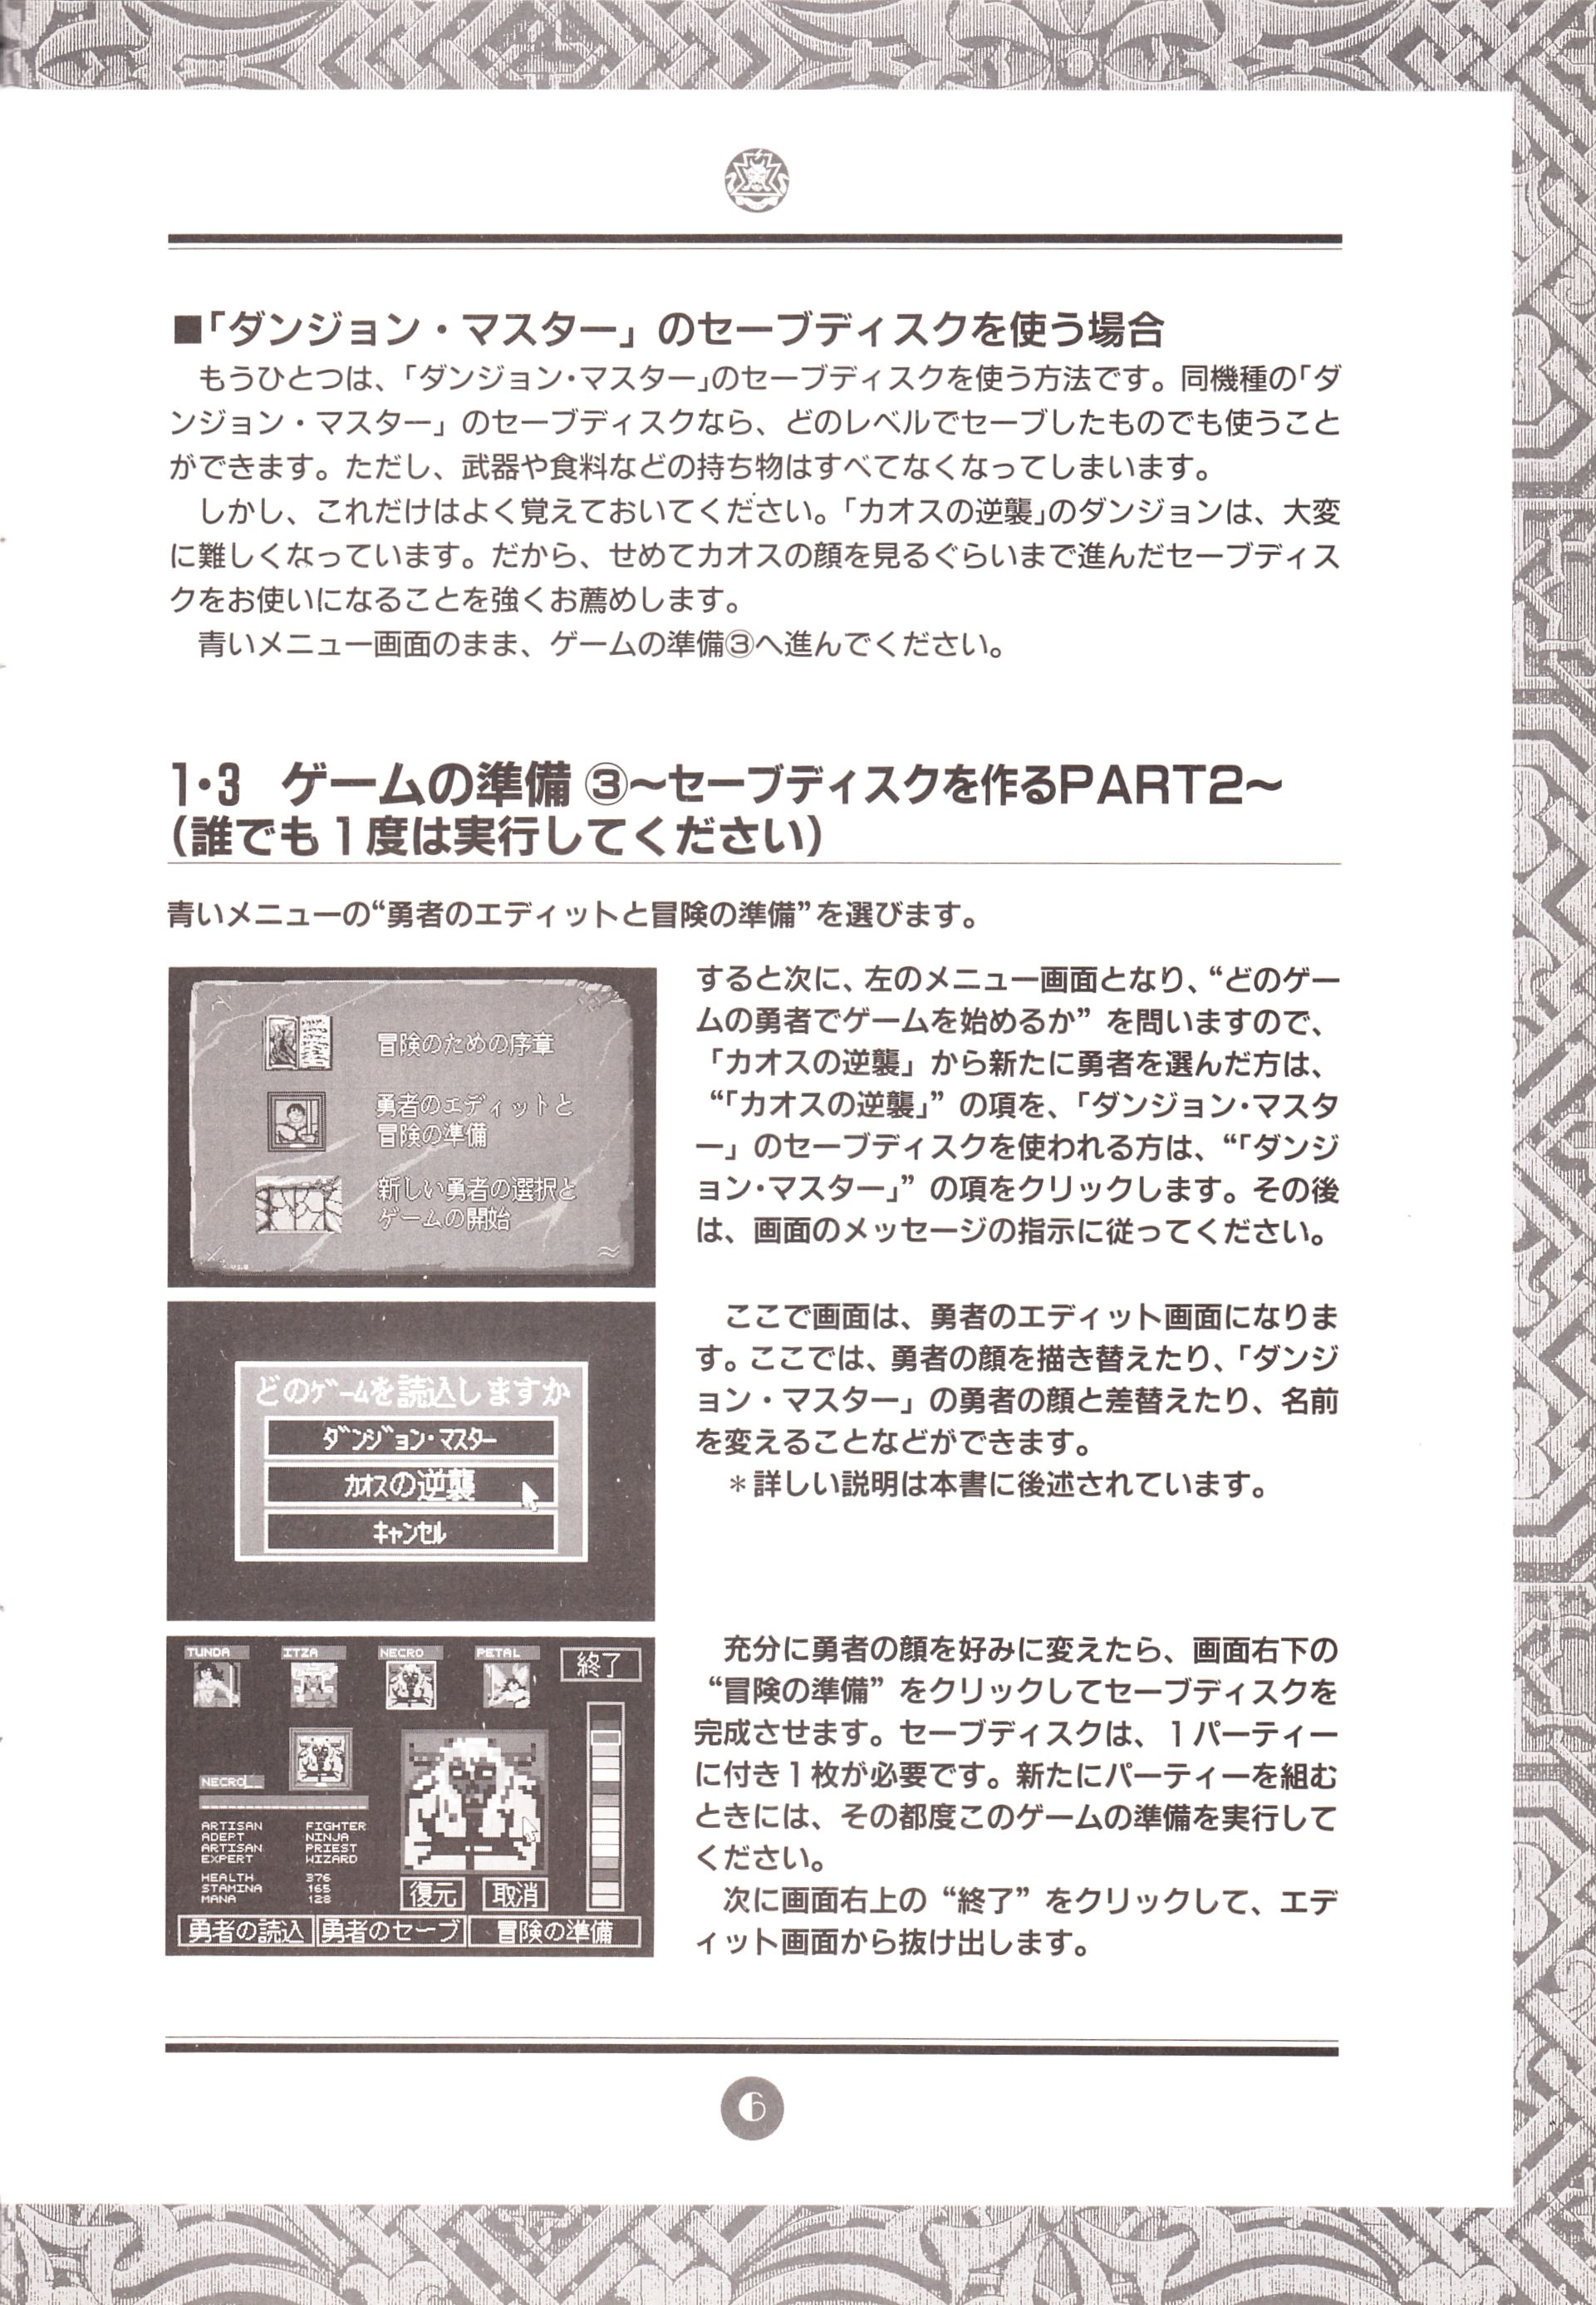 Game - Chaos Strikes Back - JP - PC-9801 - 3-5-inch - An Operation Manual - Page 009 - Scan